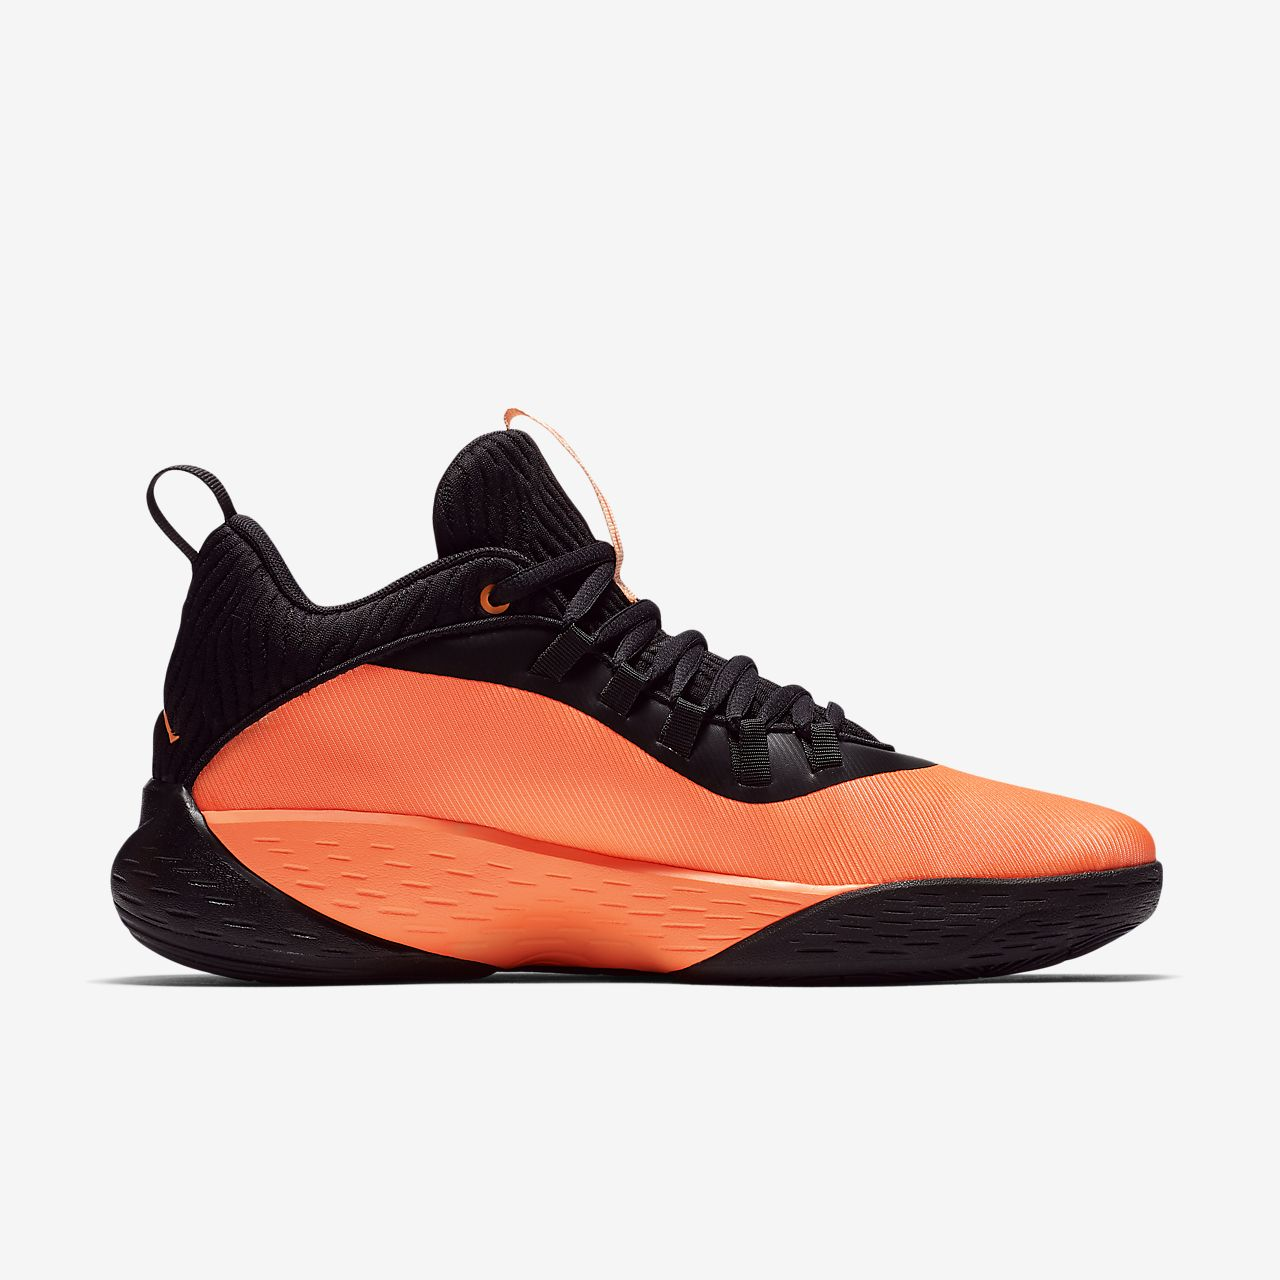 24f098f76e2ced Fly MVP Low Men s Basketball Shoe Jordan Super.Fly MVP Low Men s Basketball  Shoe